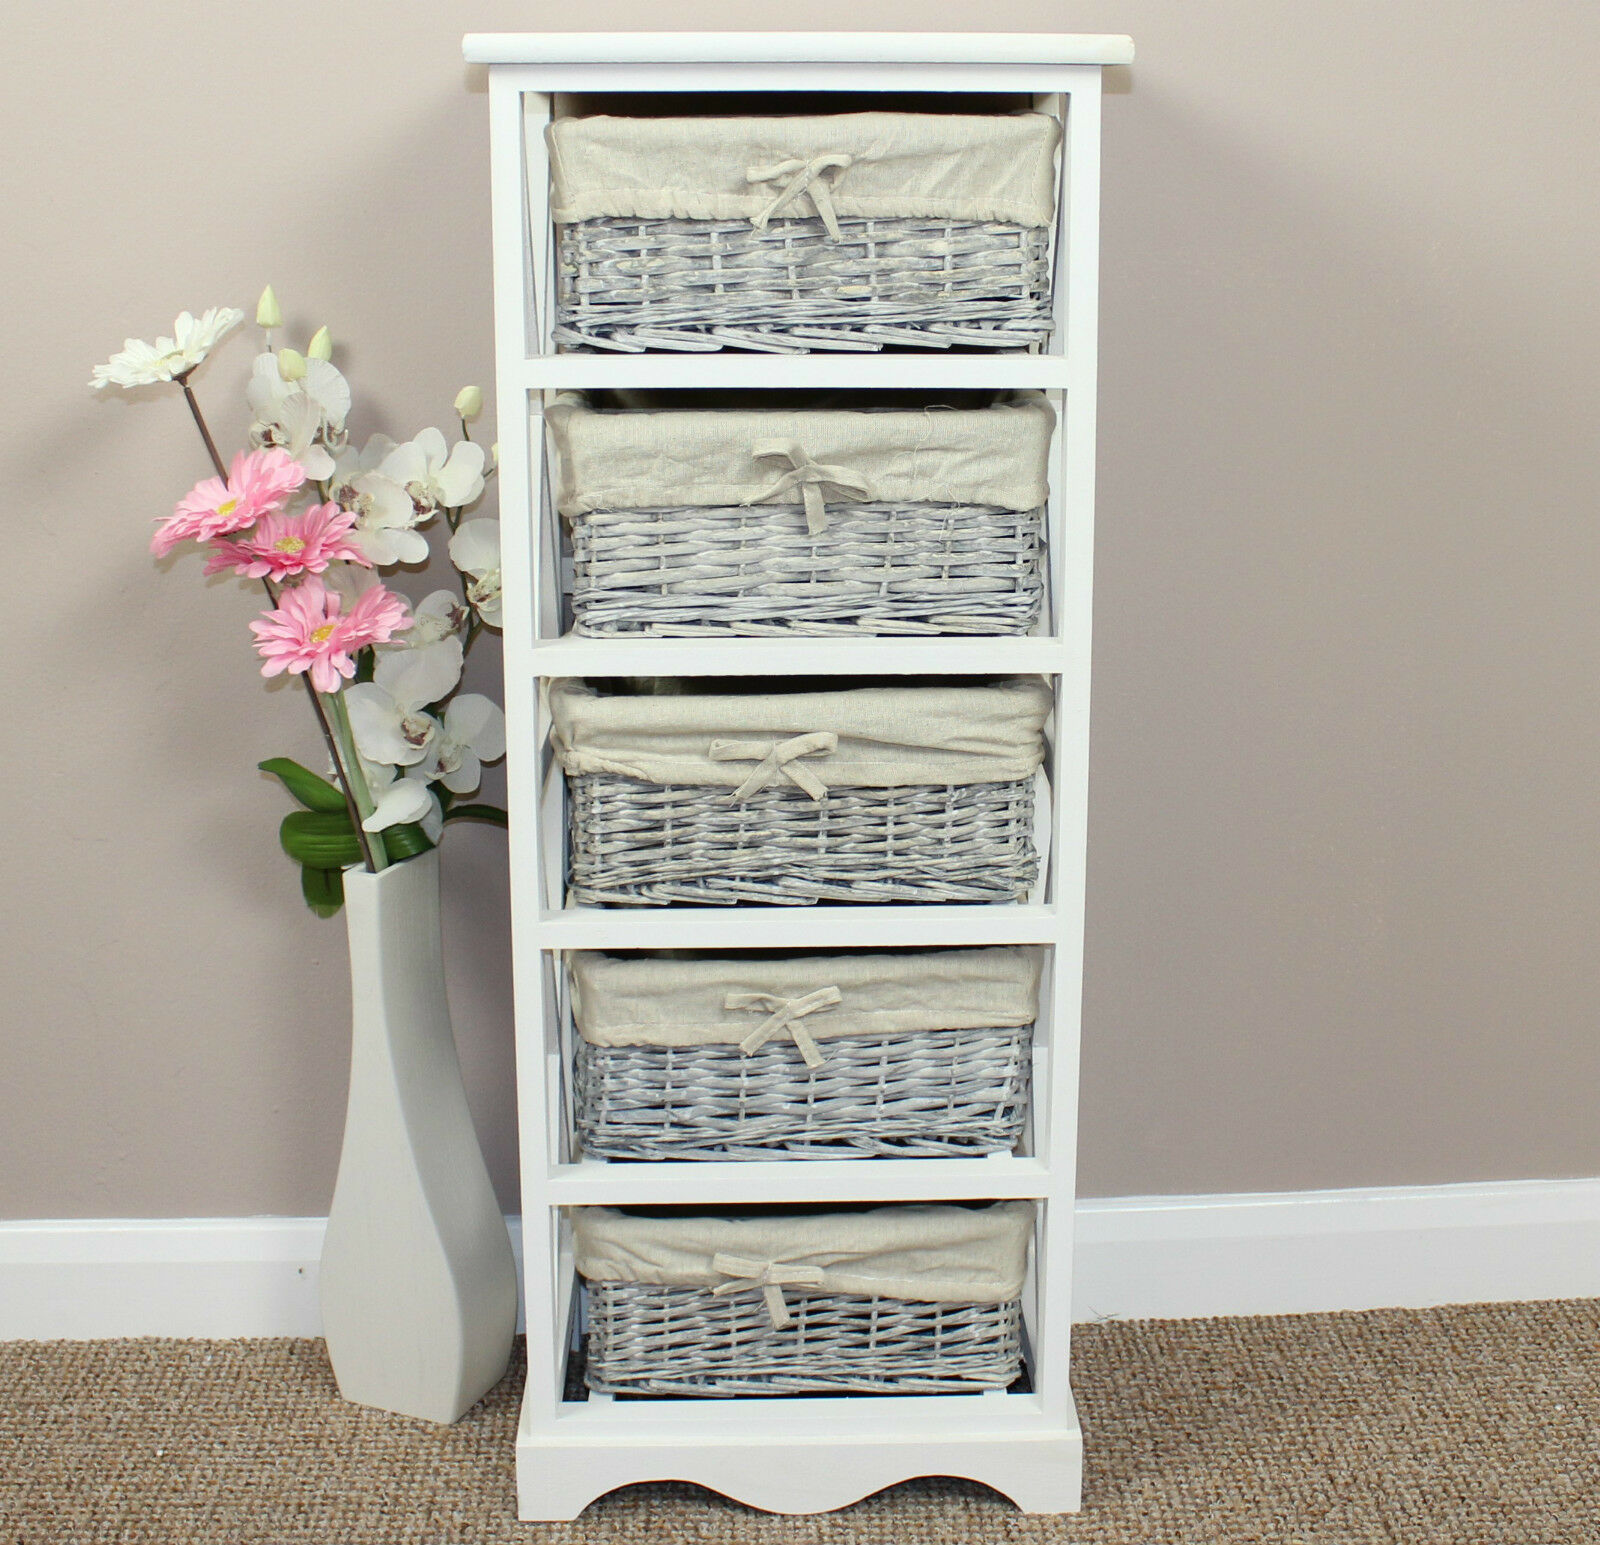 shabby chic painted storage chest wicker basket storage painted furniture 5060443860710 ebay. Black Bedroom Furniture Sets. Home Design Ideas